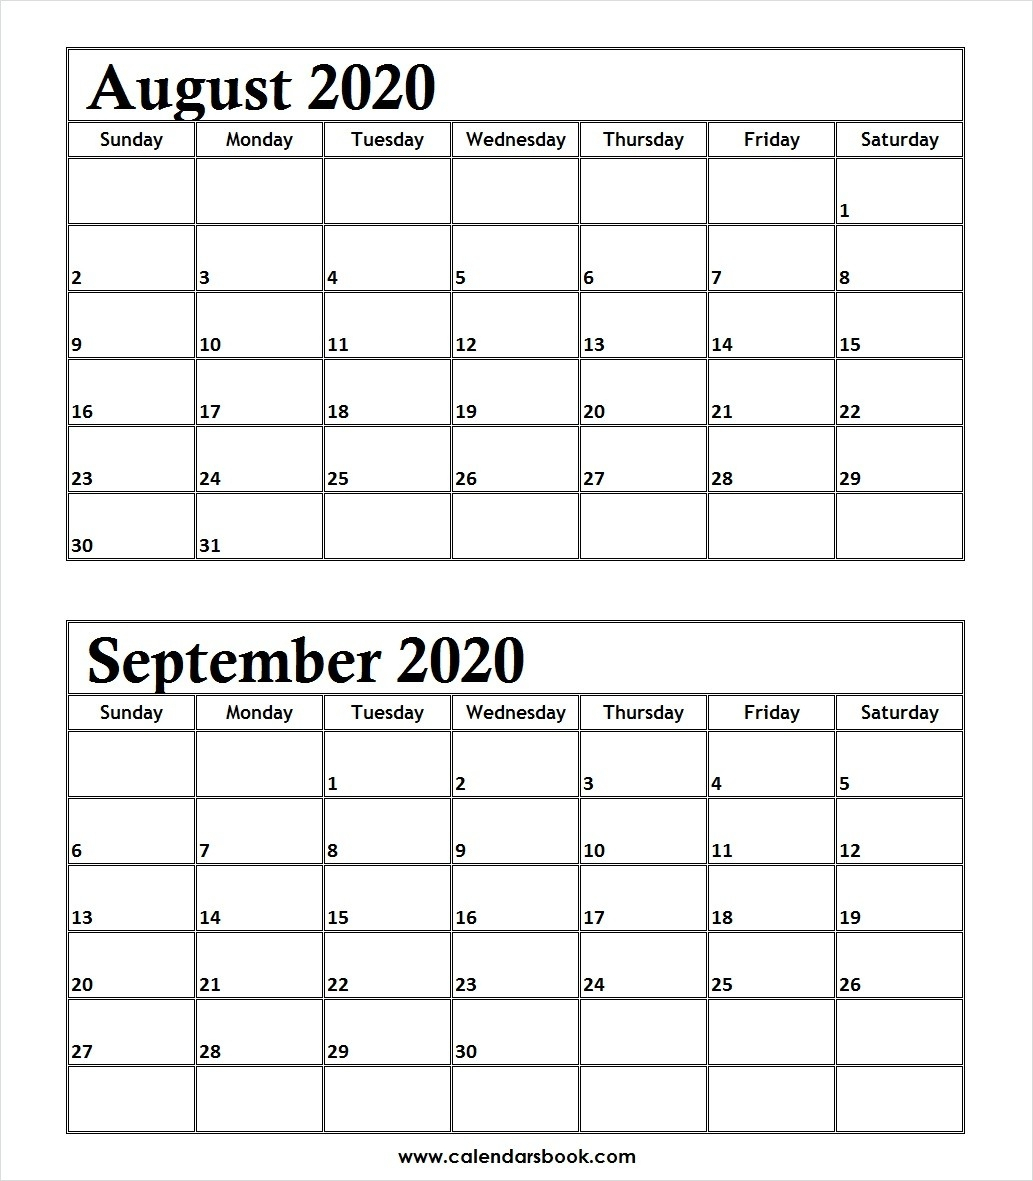 Behavior Weekly Calendar Template Free | Example Calendar for Calendar August And September 2020